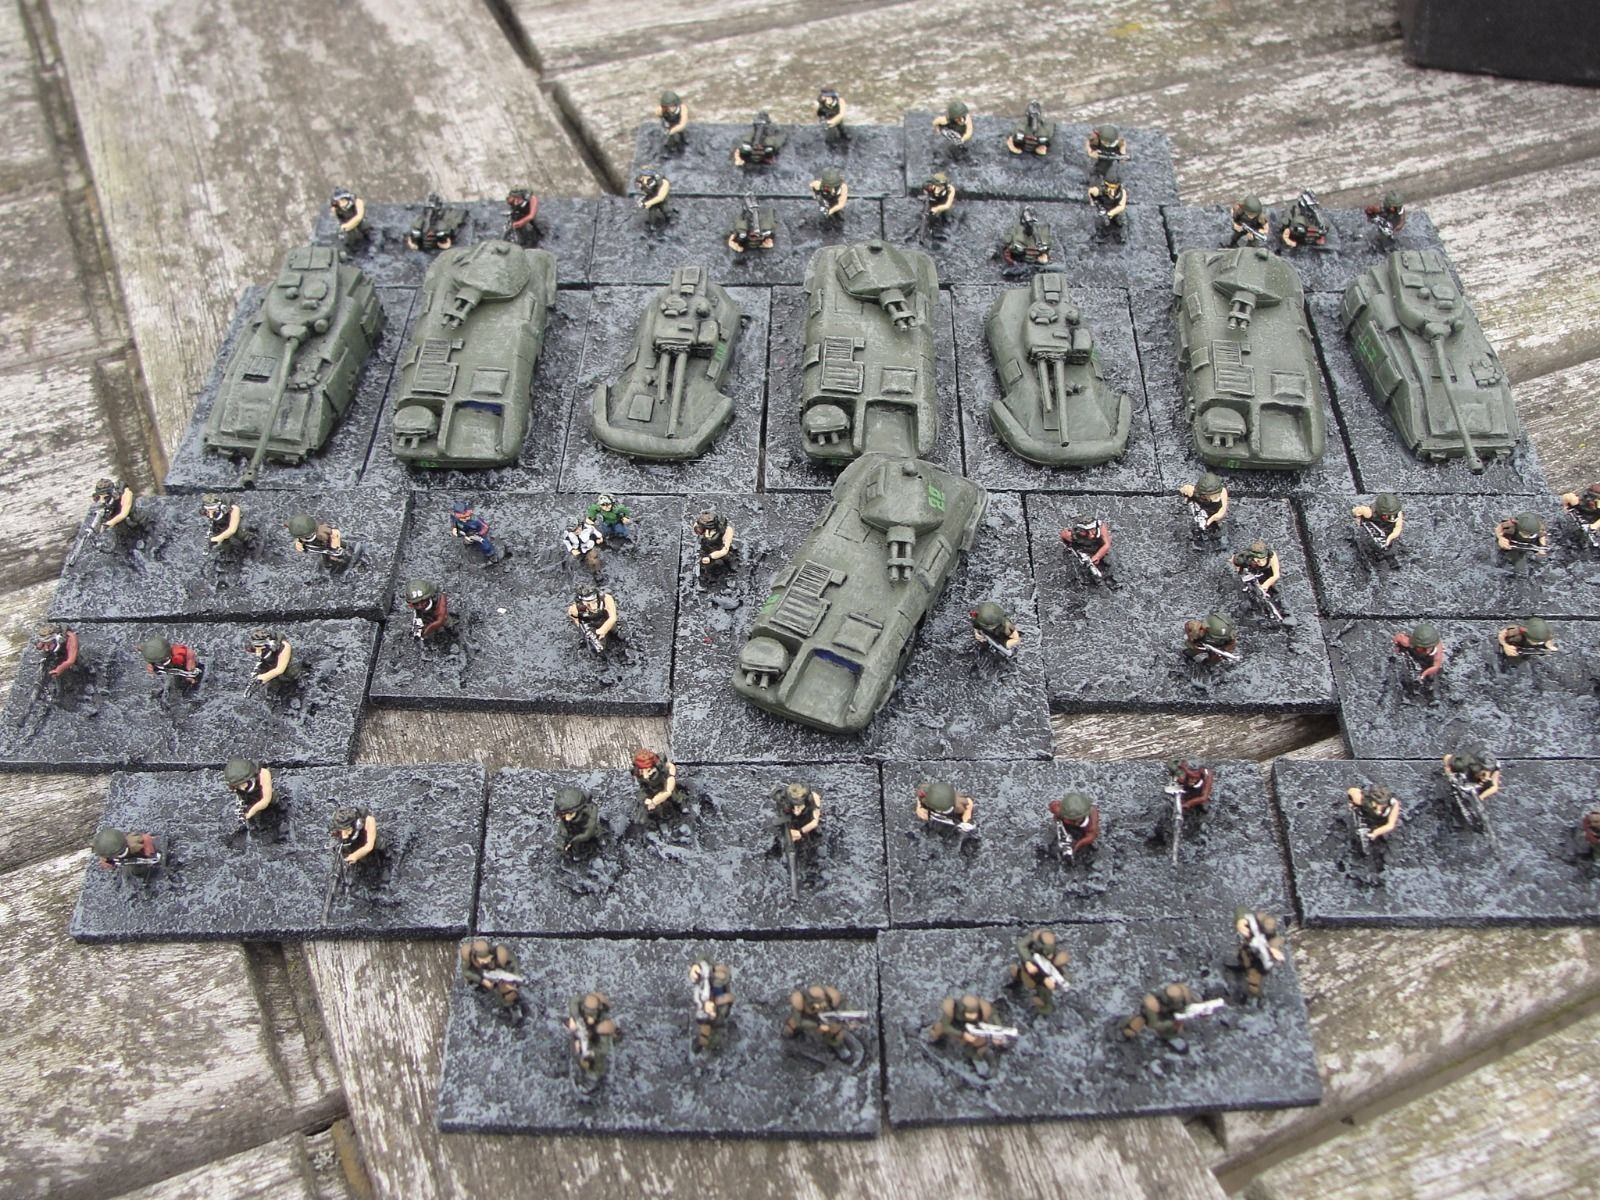 10mm Pendraken Minis Colonial Marines And Aliens Sci Fi Armies 34 51 Alien Sci Fi Sci Fi Army Sci Fi